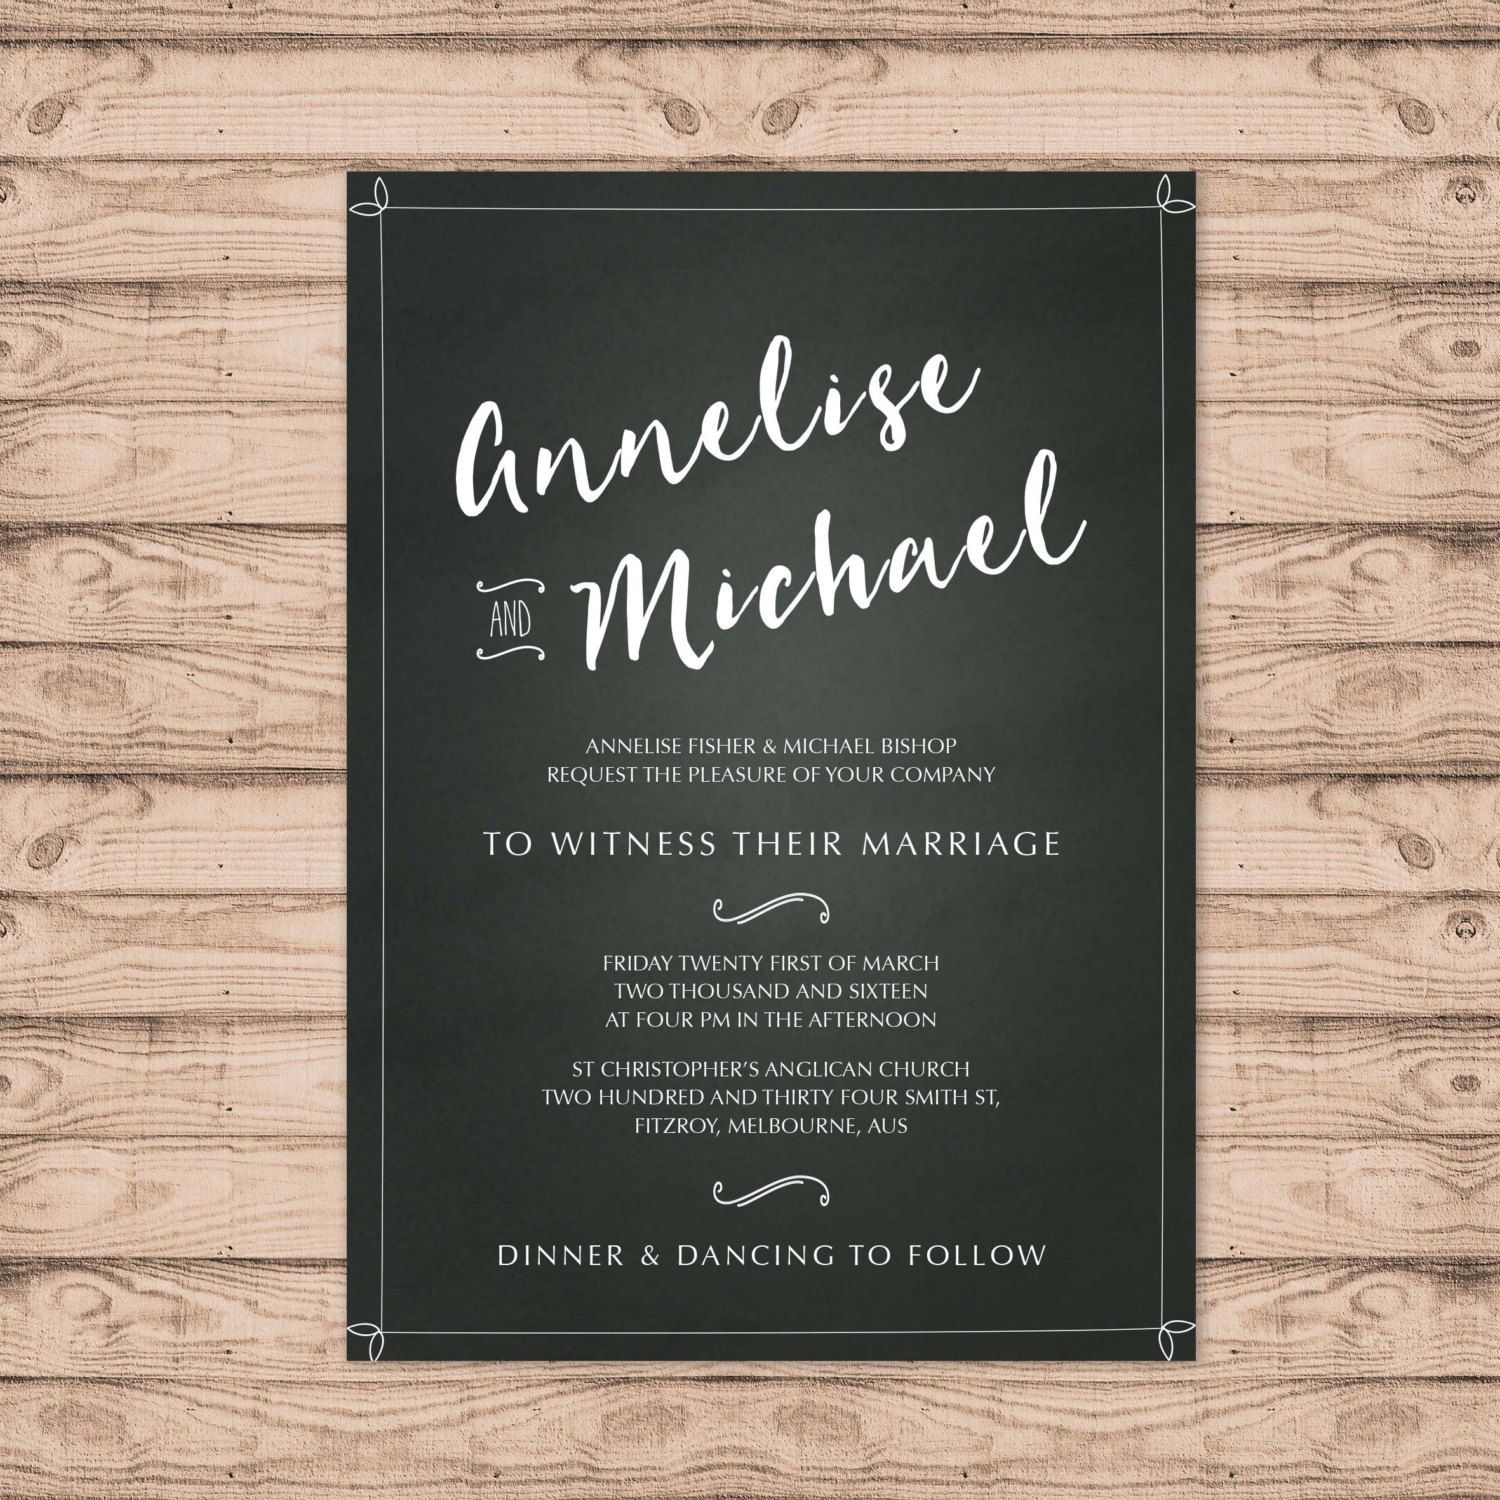 Chalkboard Wedding Invitation   Print At Home File Or Printed Invitations    On The Board Rustic